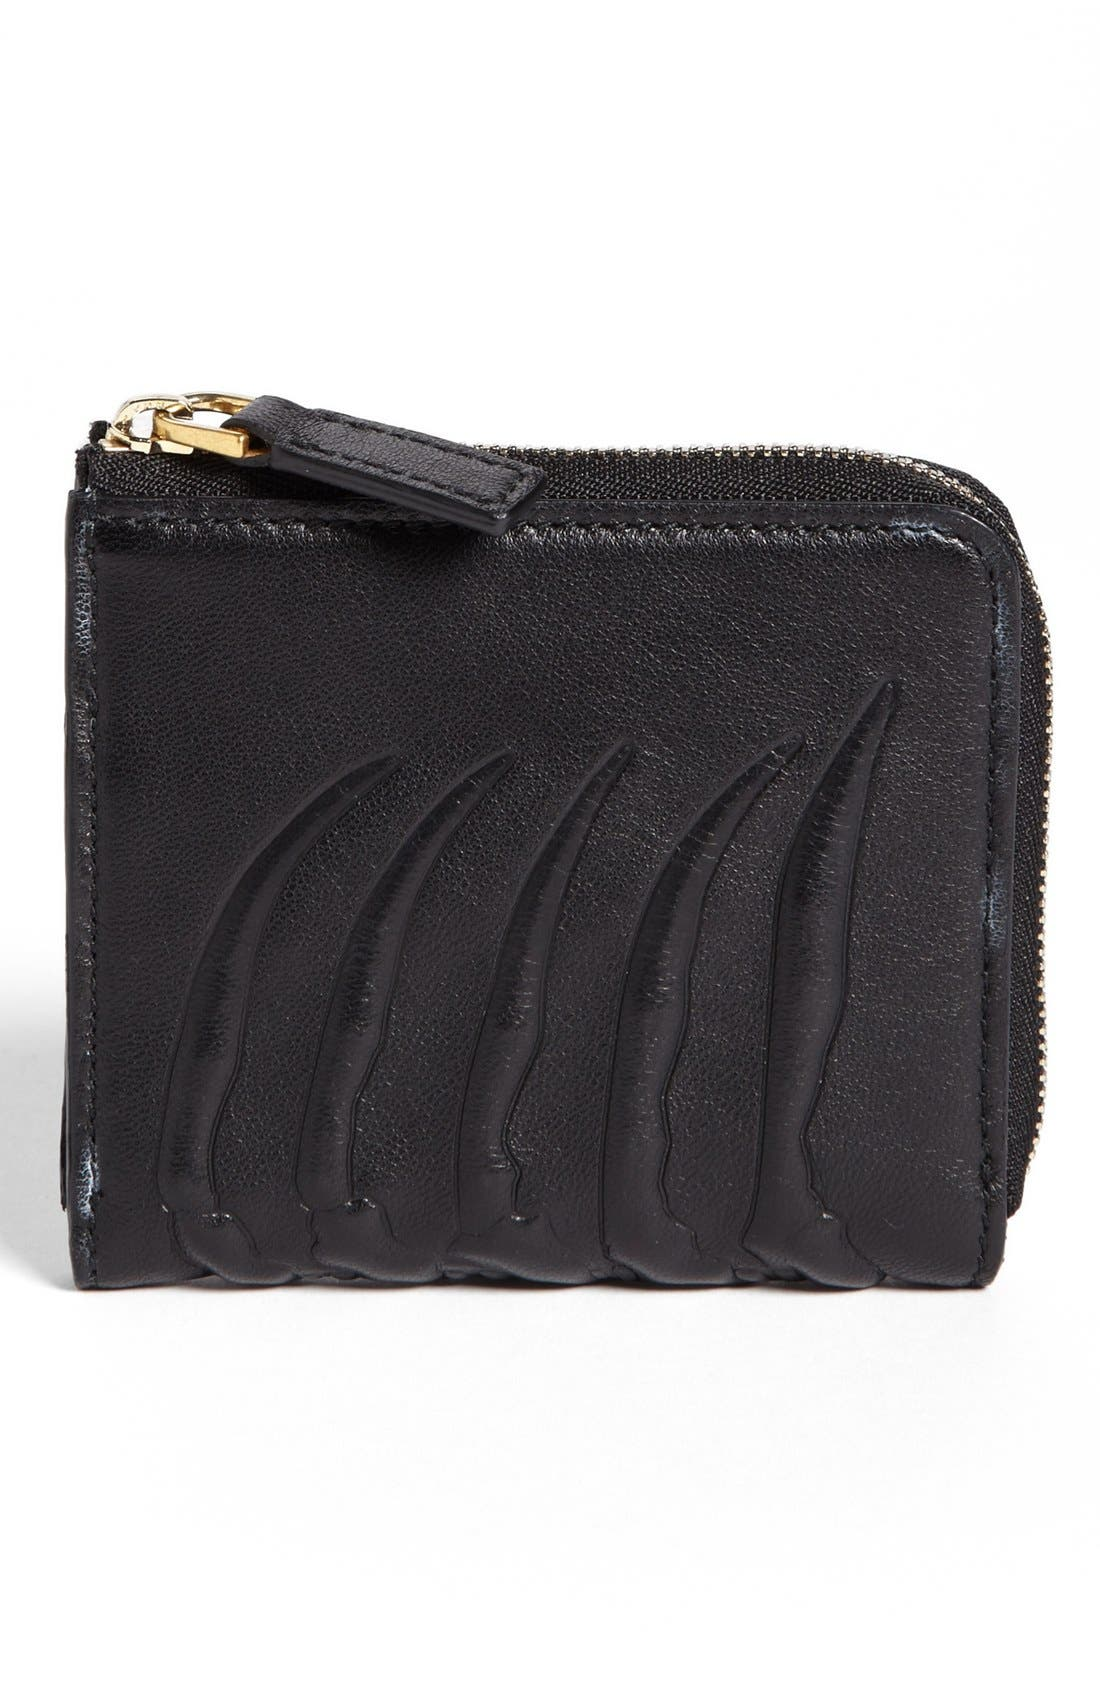 Main Image - Alexander McQueen Rib Cage Leather Half Zip Wallet